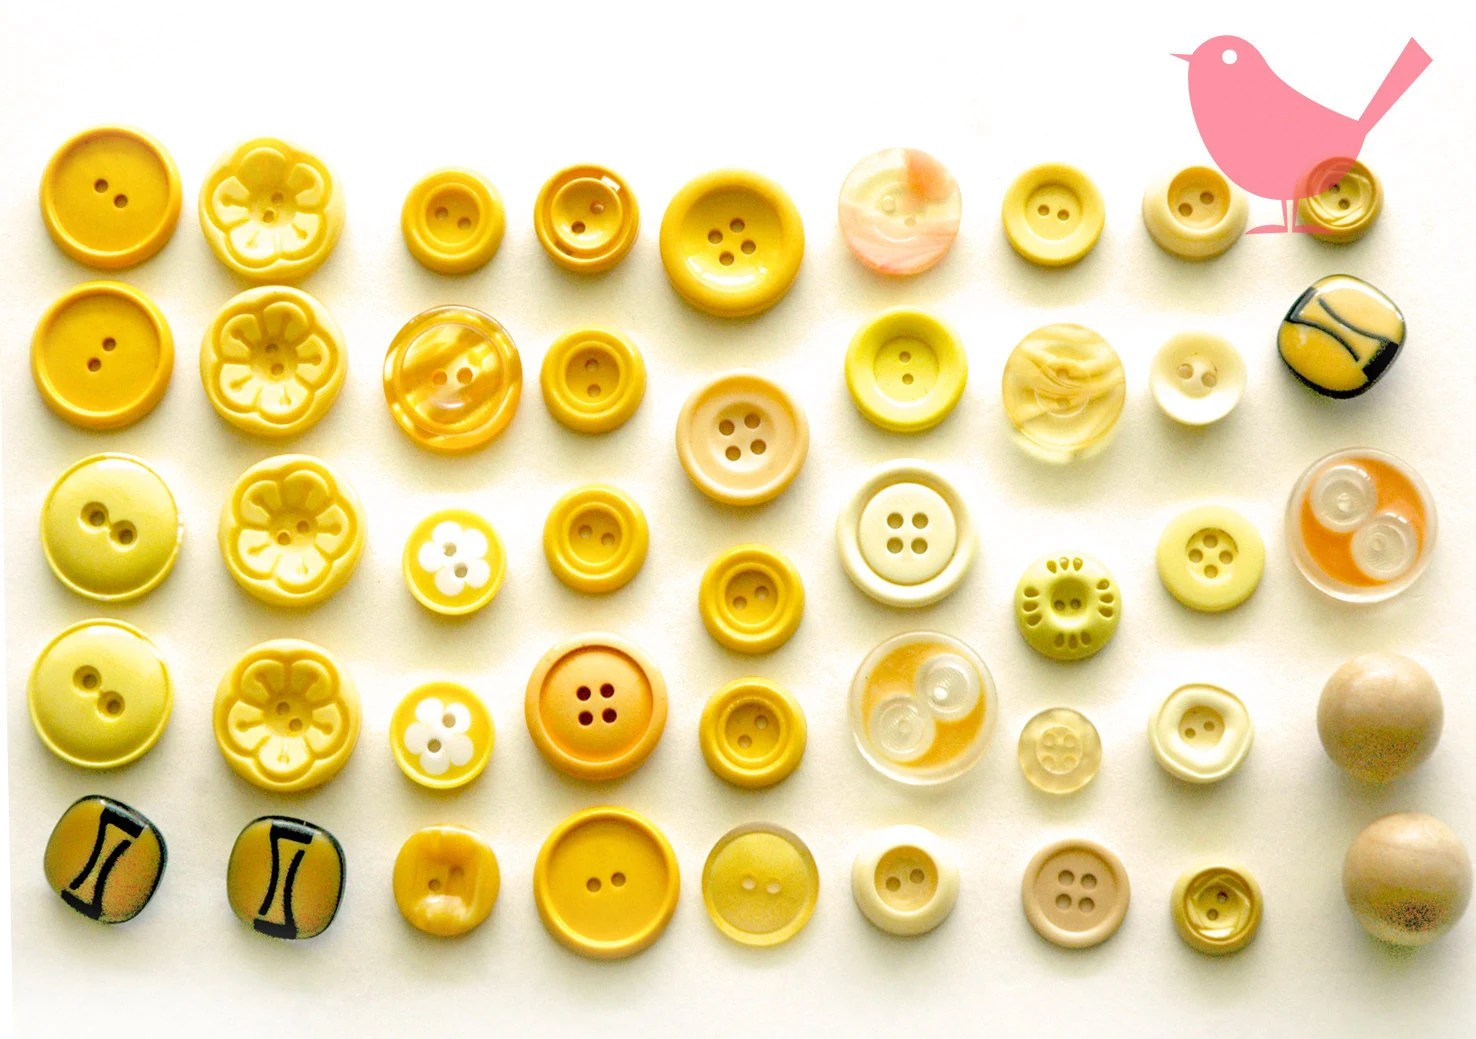 Vintage buttons - assorted yellow buttons - misspinkrobin